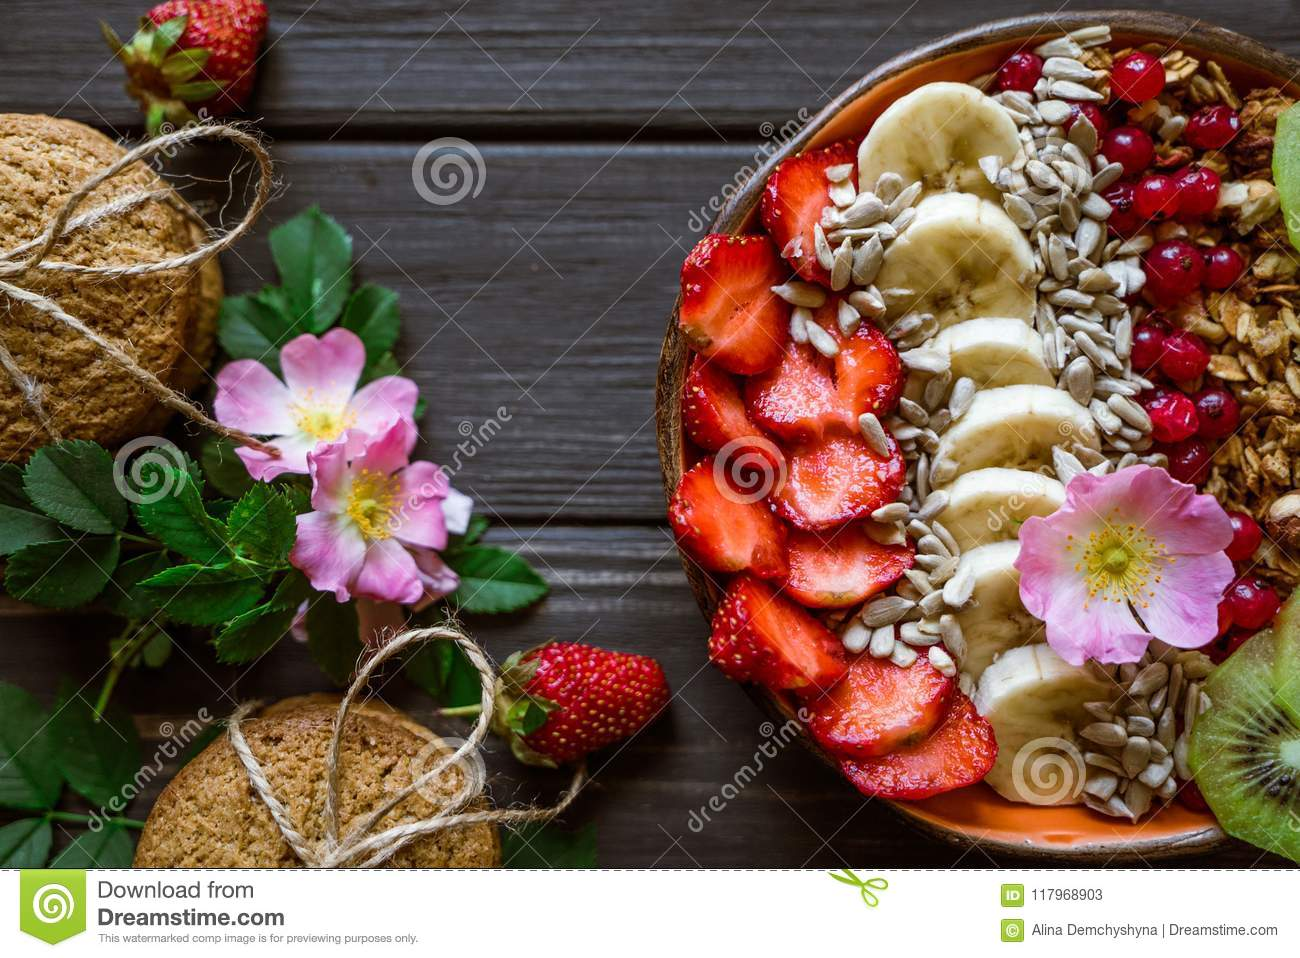 Granola, berries, biscuits and flowers 2